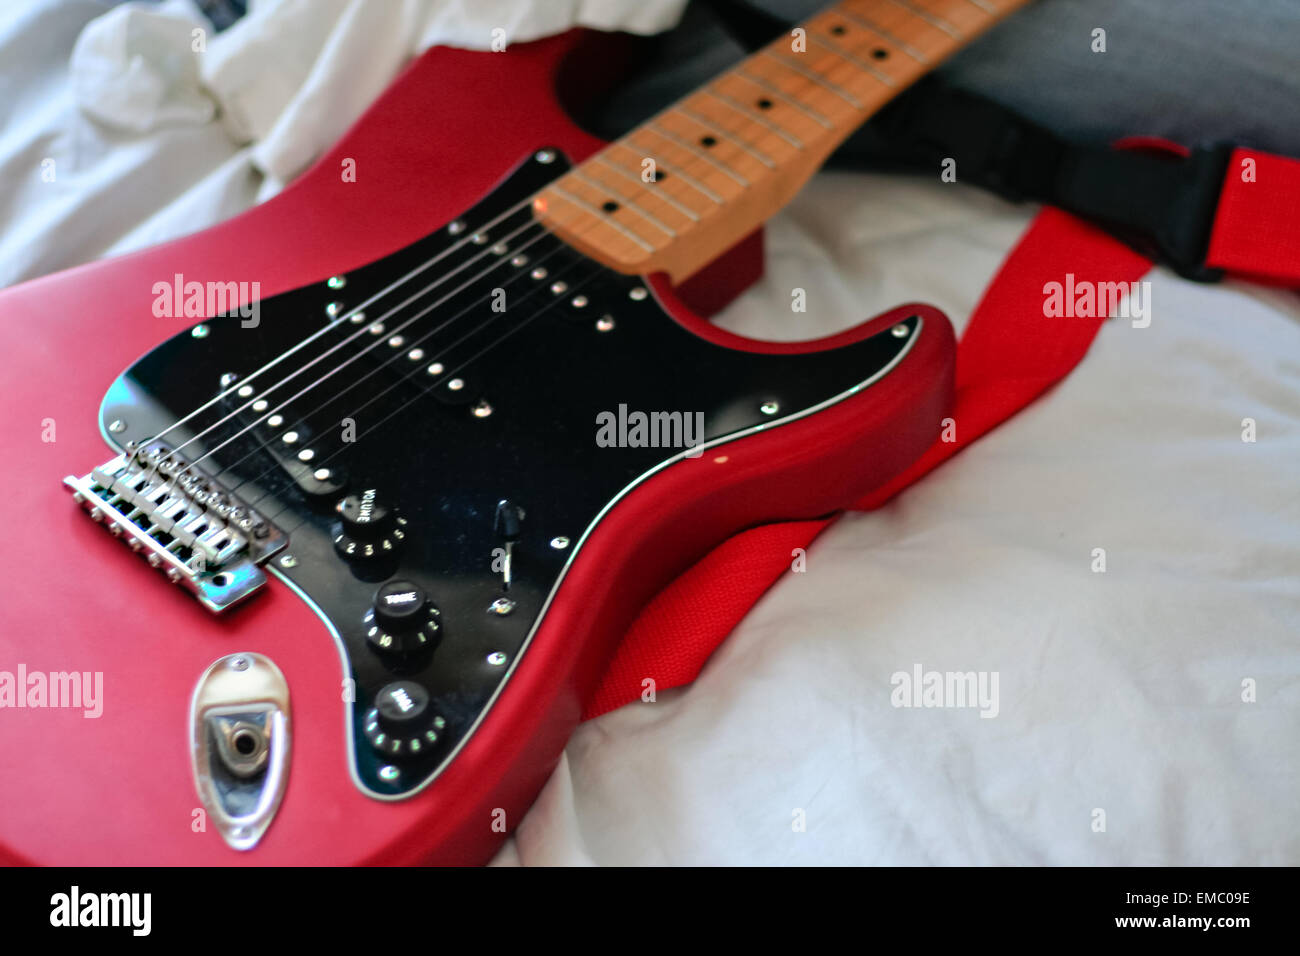 Unidentified Man Cleans His Electric Guitar Neck With A White Rag